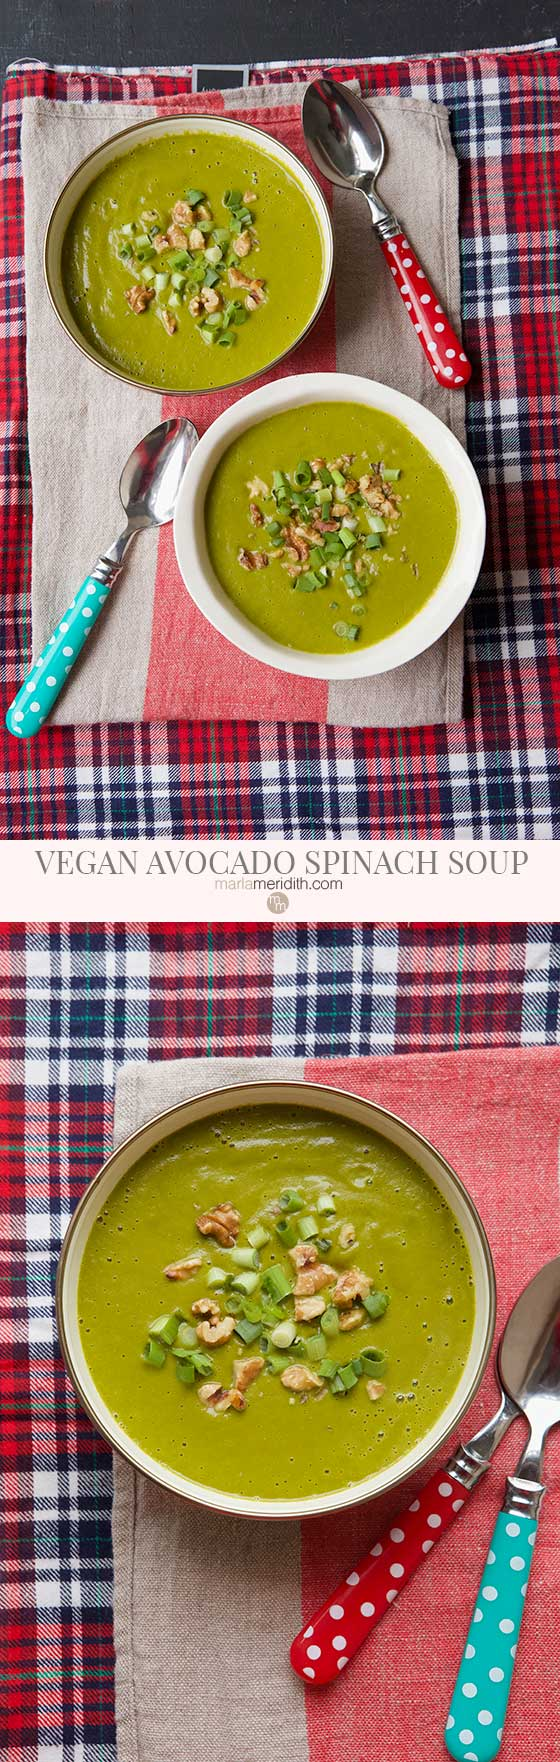 We love this super healthy Vegan Avocado Spinach Soup recipe, it's filled with flavor, healthy fats and vitamin packed. Delicious any time of the year! MarlaMeridith.com